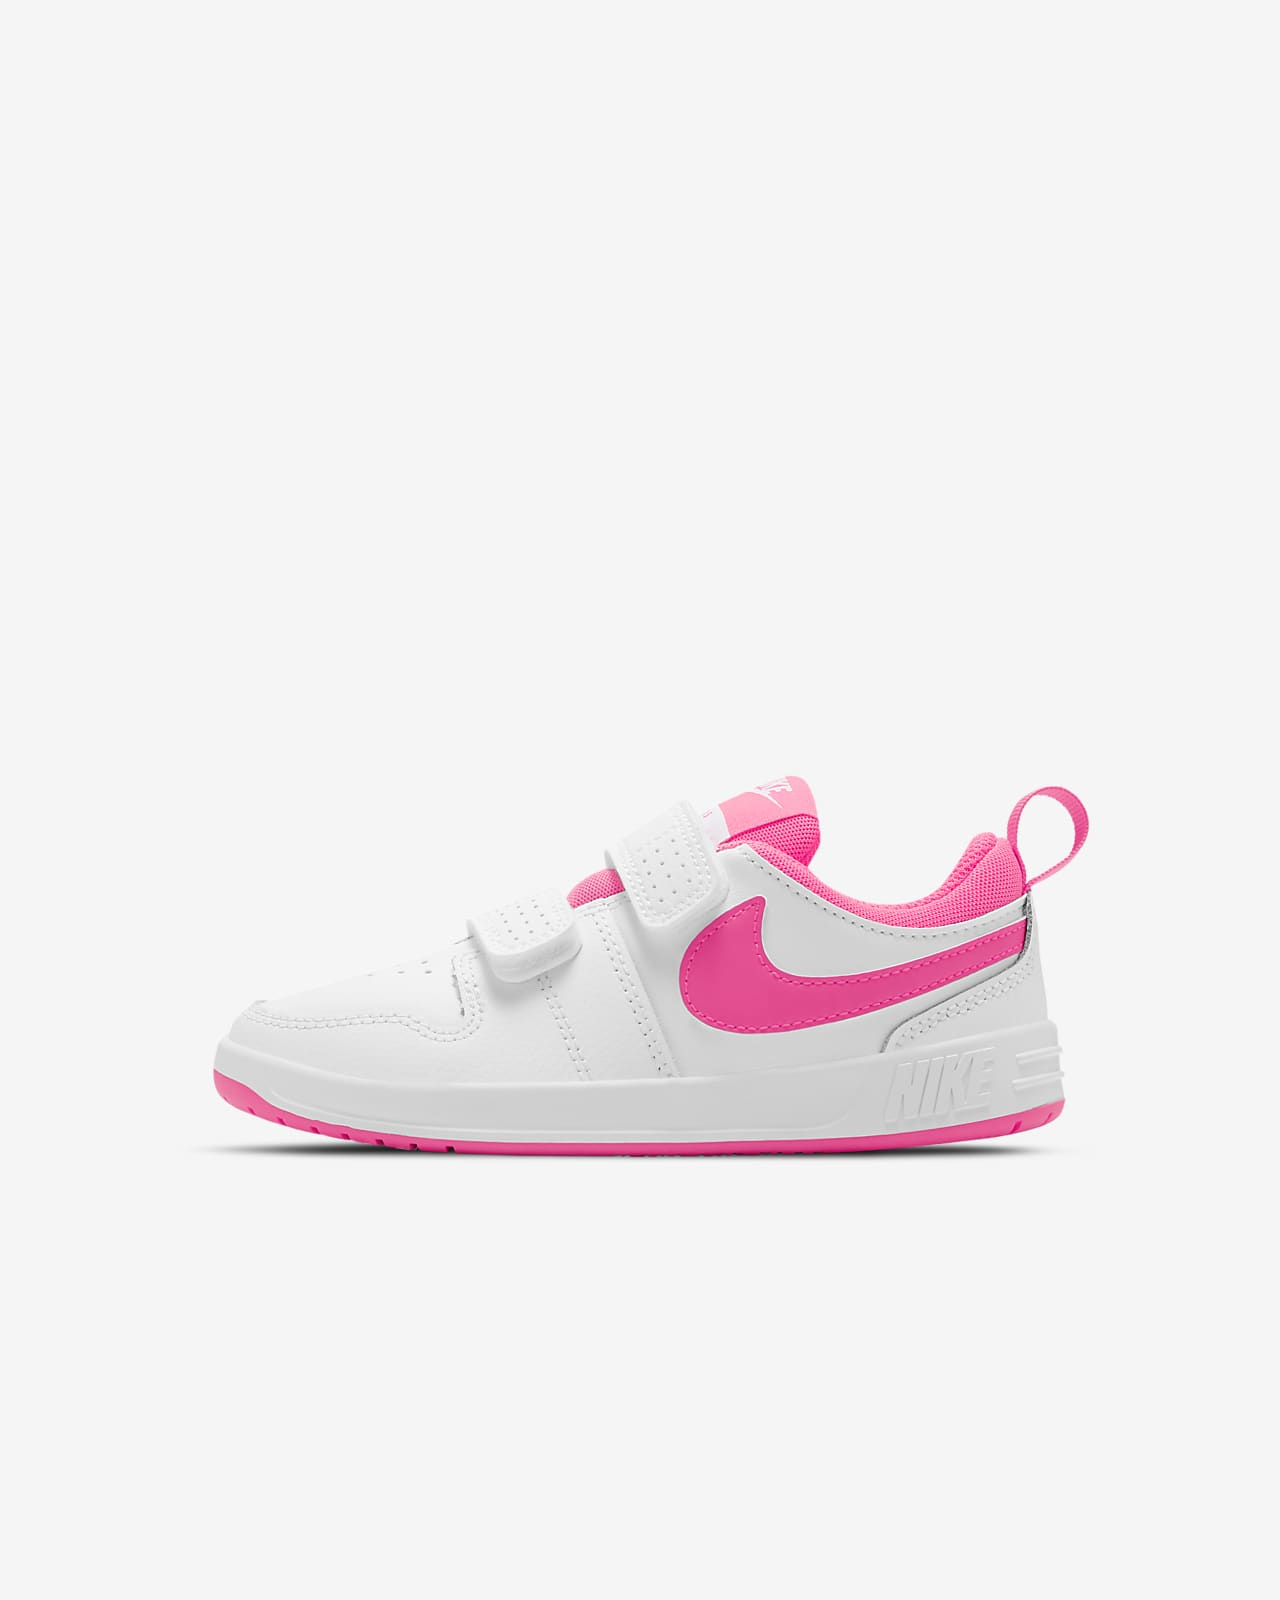 Nike Pico 5 Younger Kids' Shoe